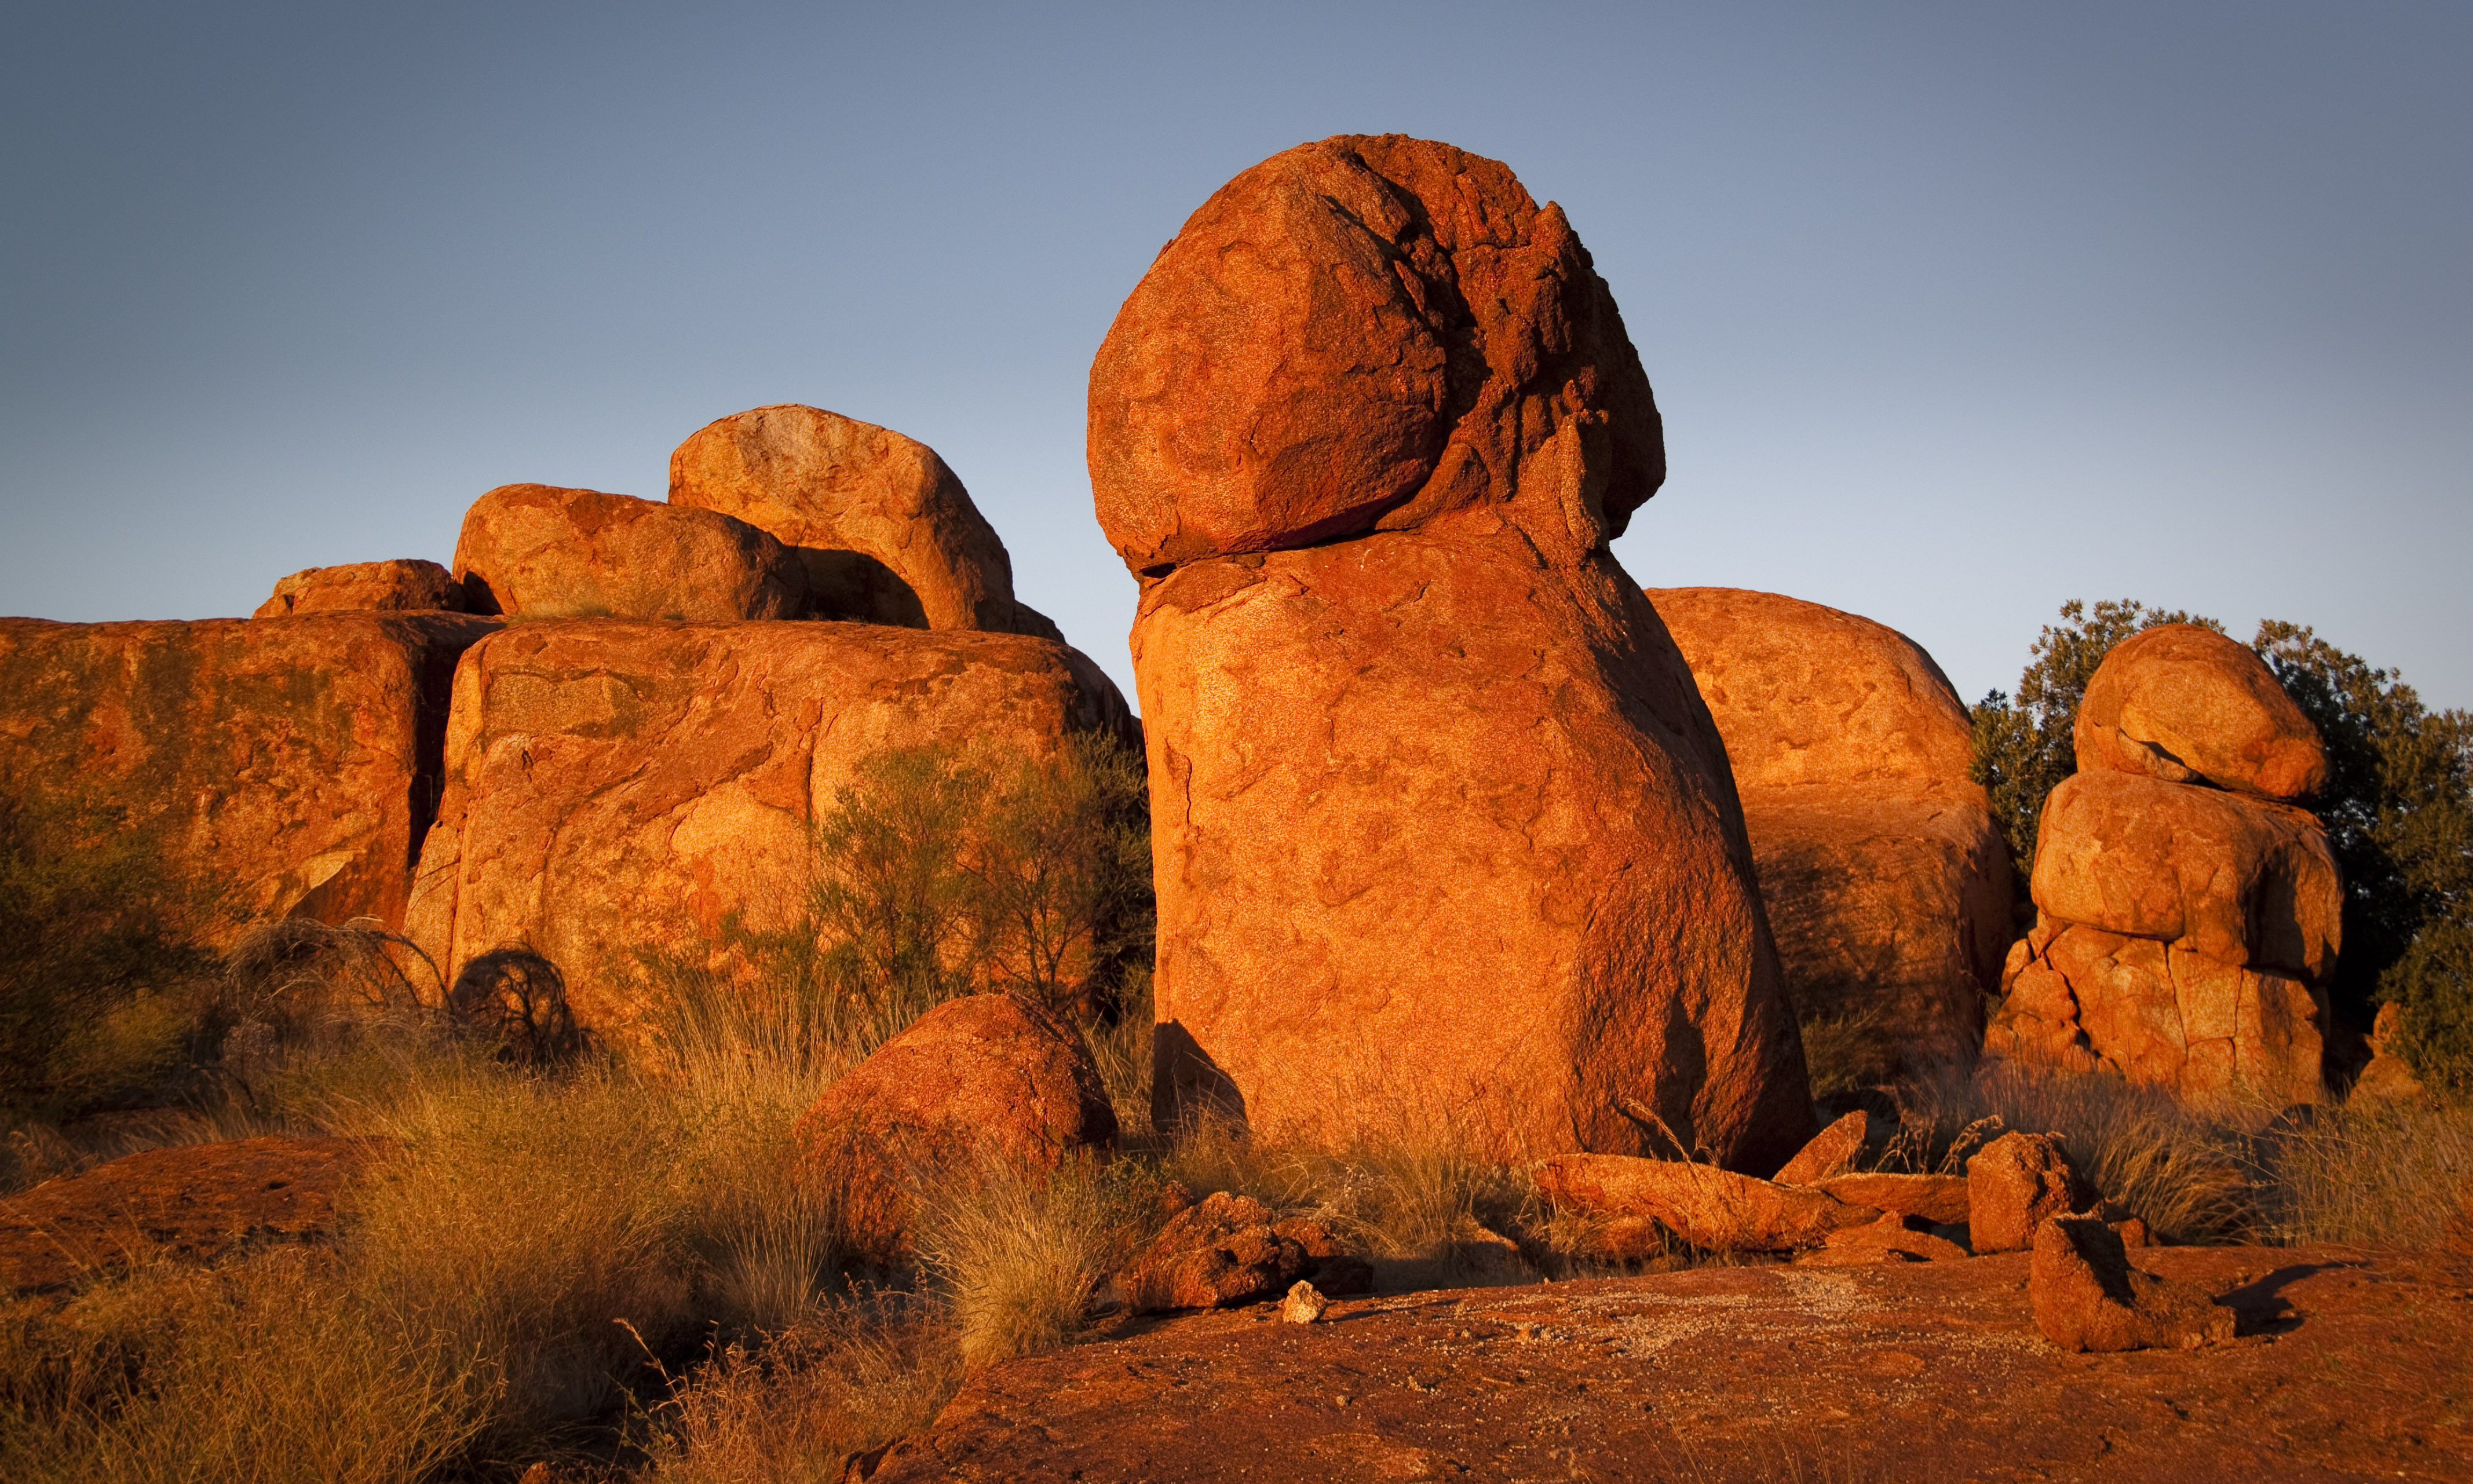 High Resolution Wallpaper | Devils Marbles 4269x2562 px